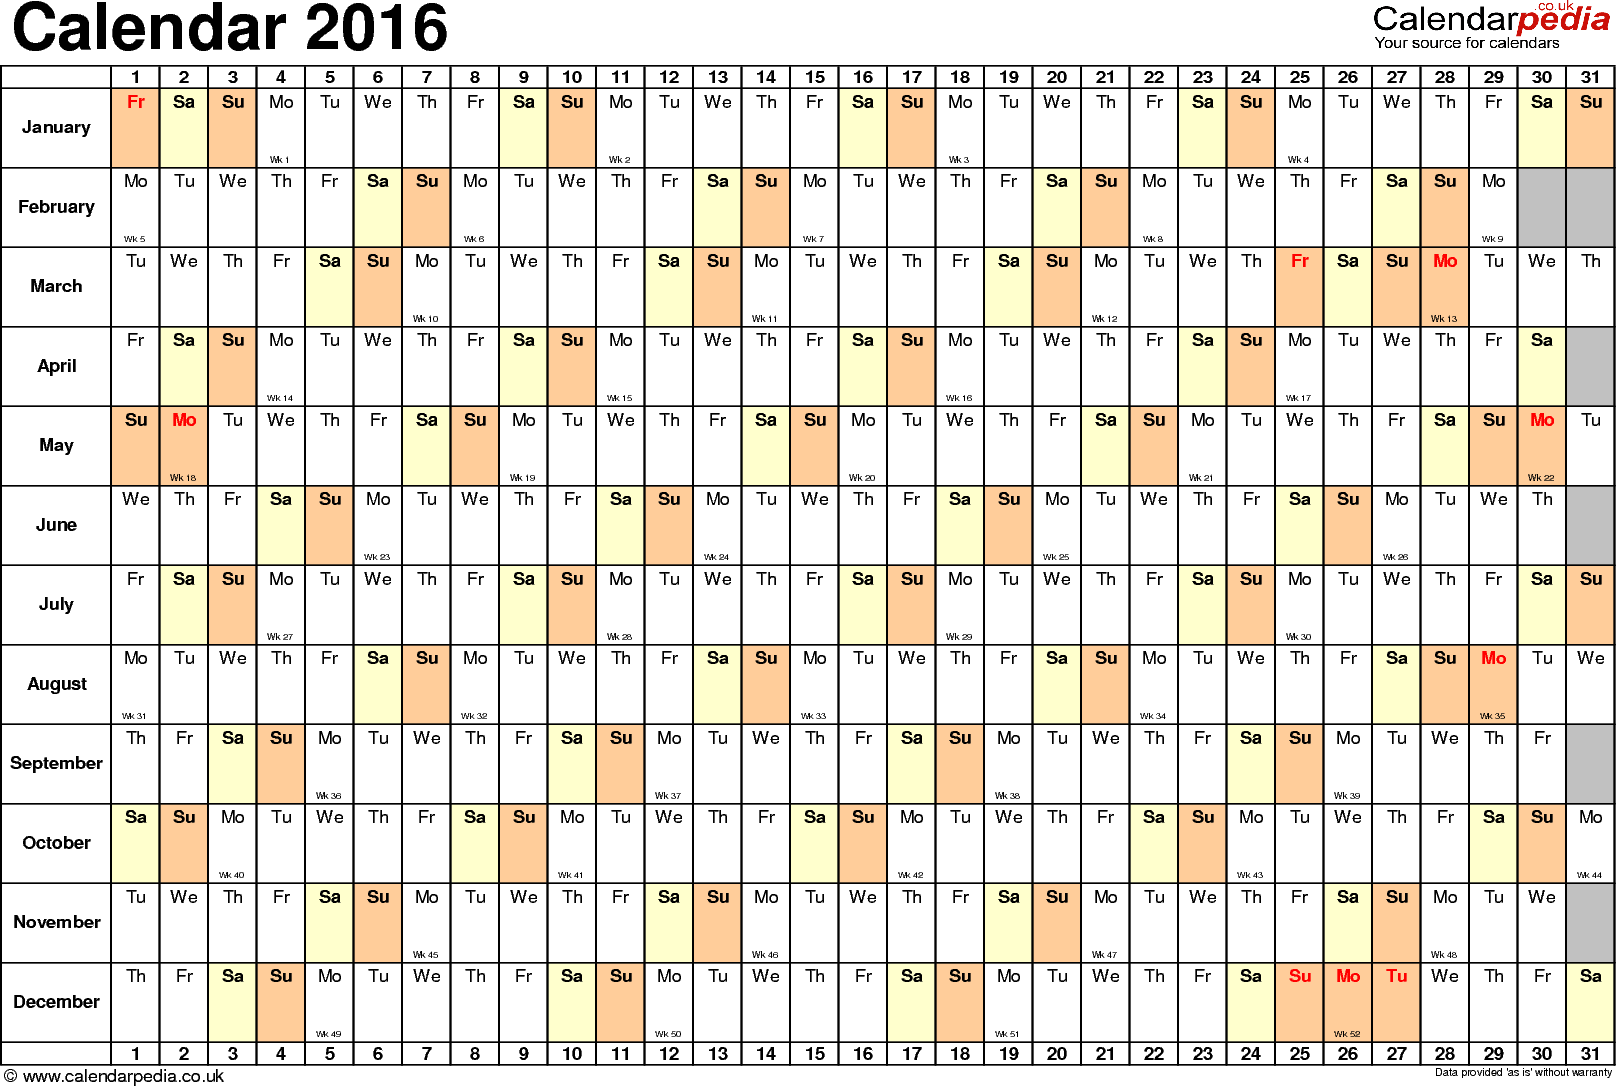 template 6 yearly calendar 2016 as excel template landscape orientation 1 page